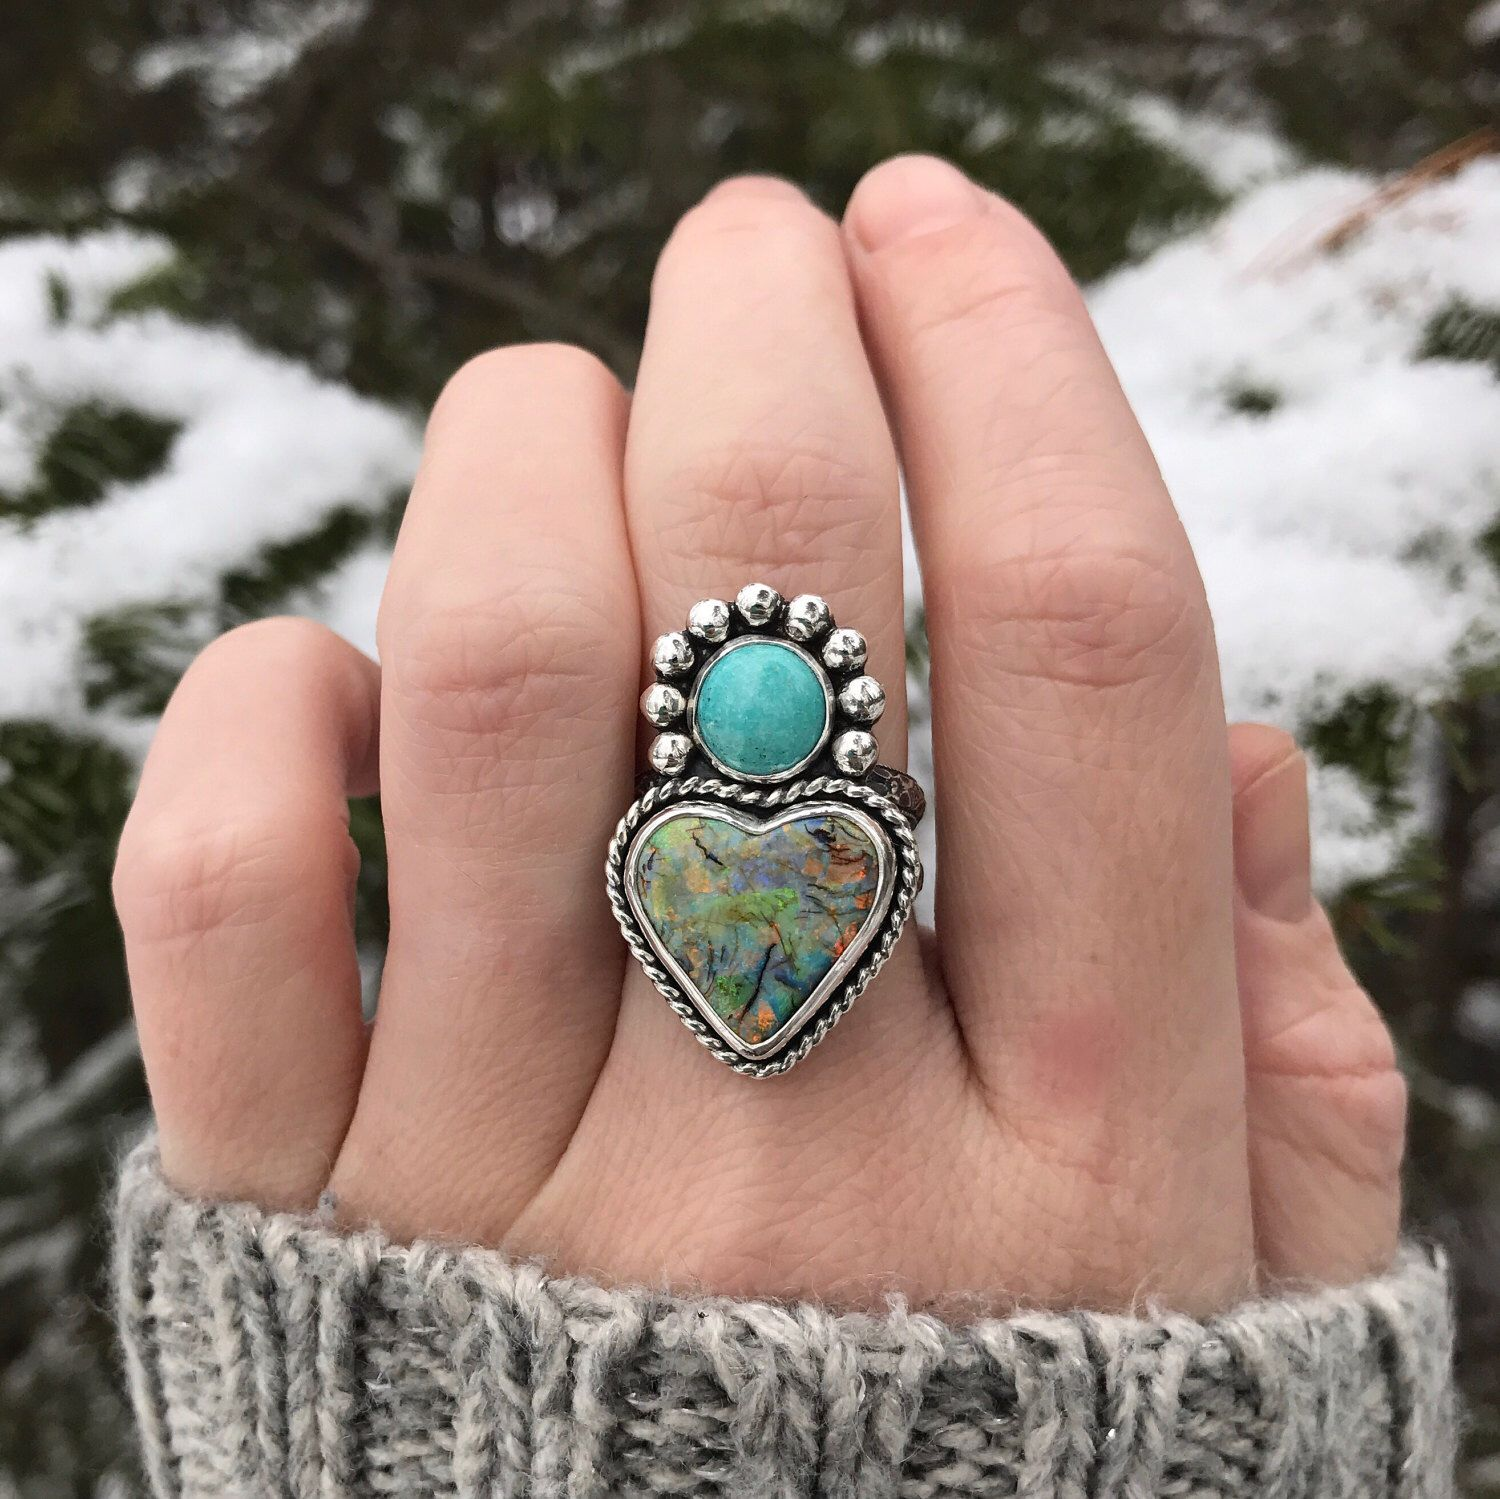 Sterling Silver Monarch opal heart ring with round turquoise! Finger Size 8. by lisajdesigns on Etsy https://www.etsy.com/listing/508173493/sterling-silver-monarch-opal-heart-ring